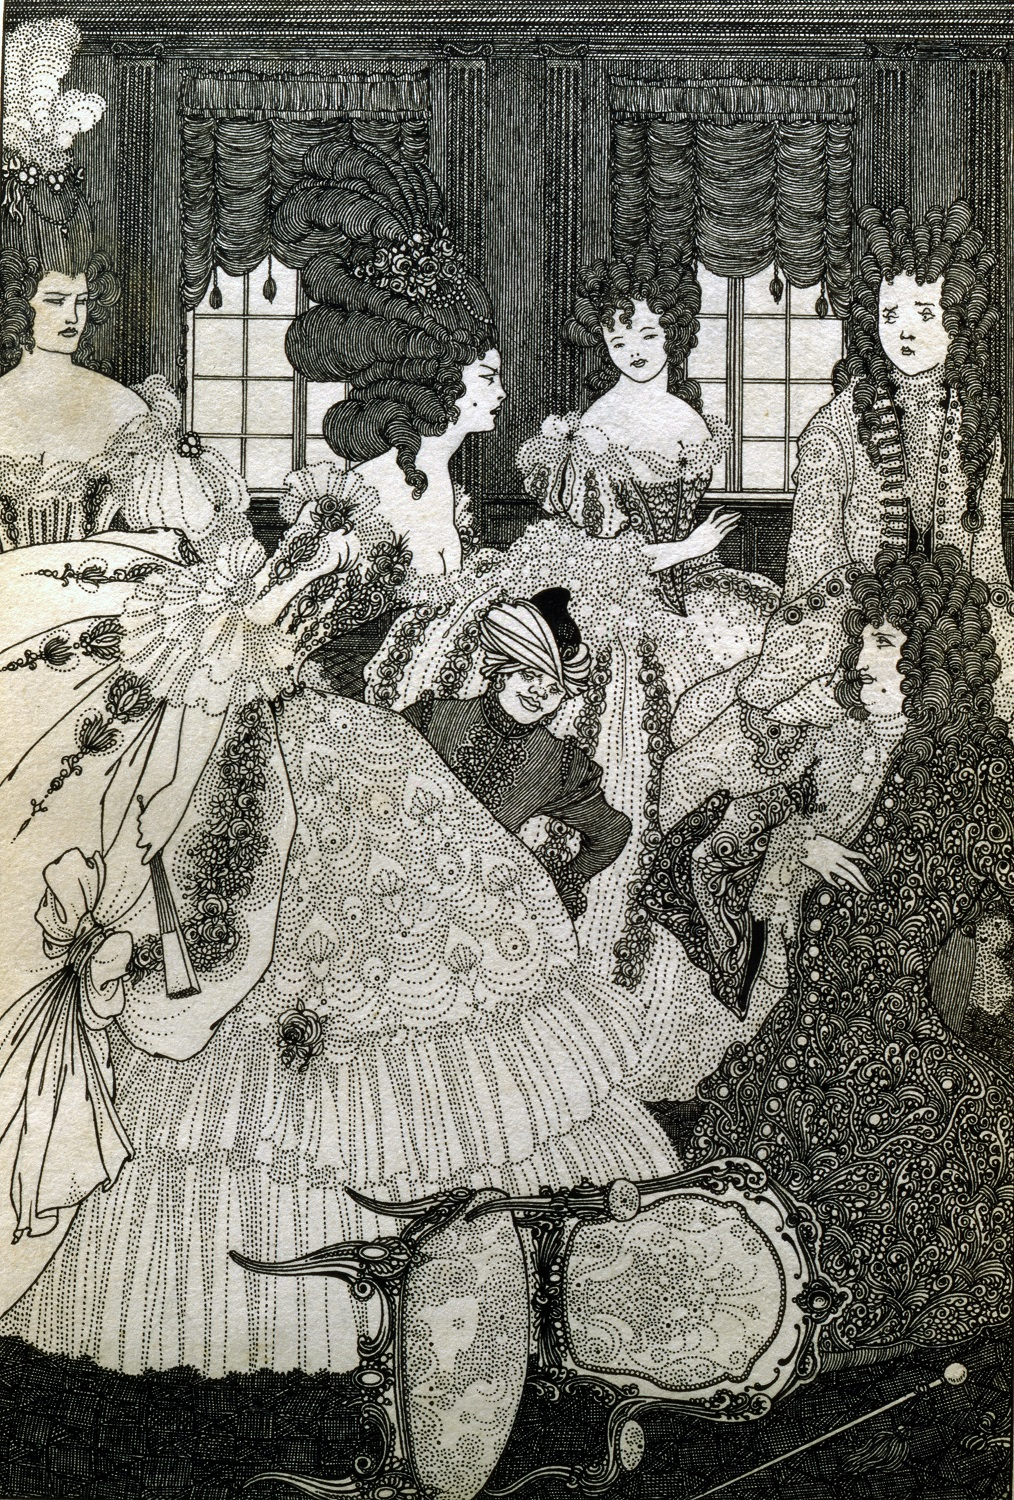 Image of The Battle of the Beaux and The Belles by Aubrey Beardsley, 1896